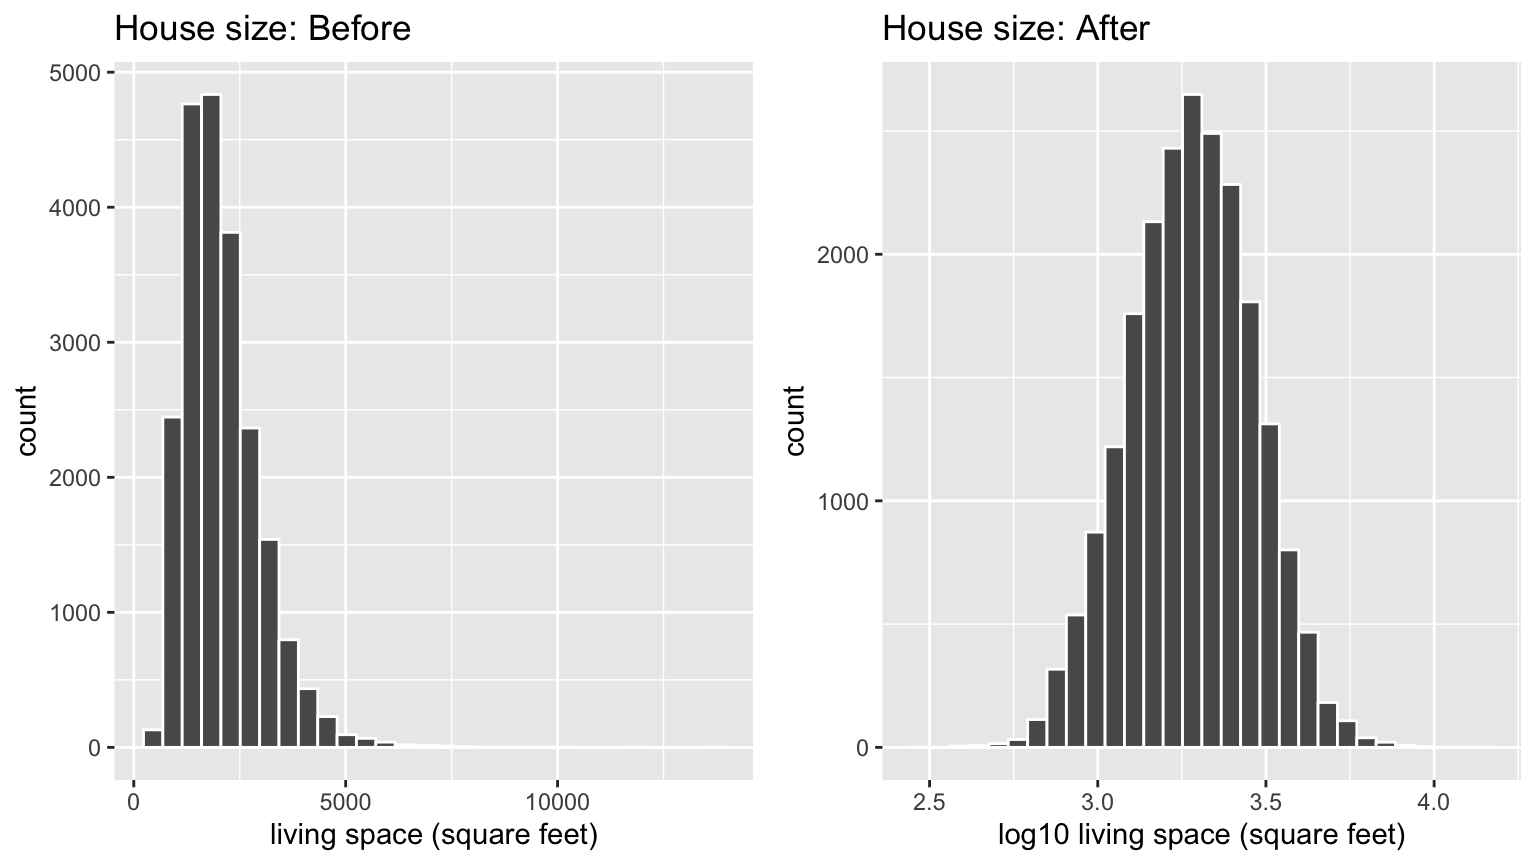 House size before and after log10-transformation